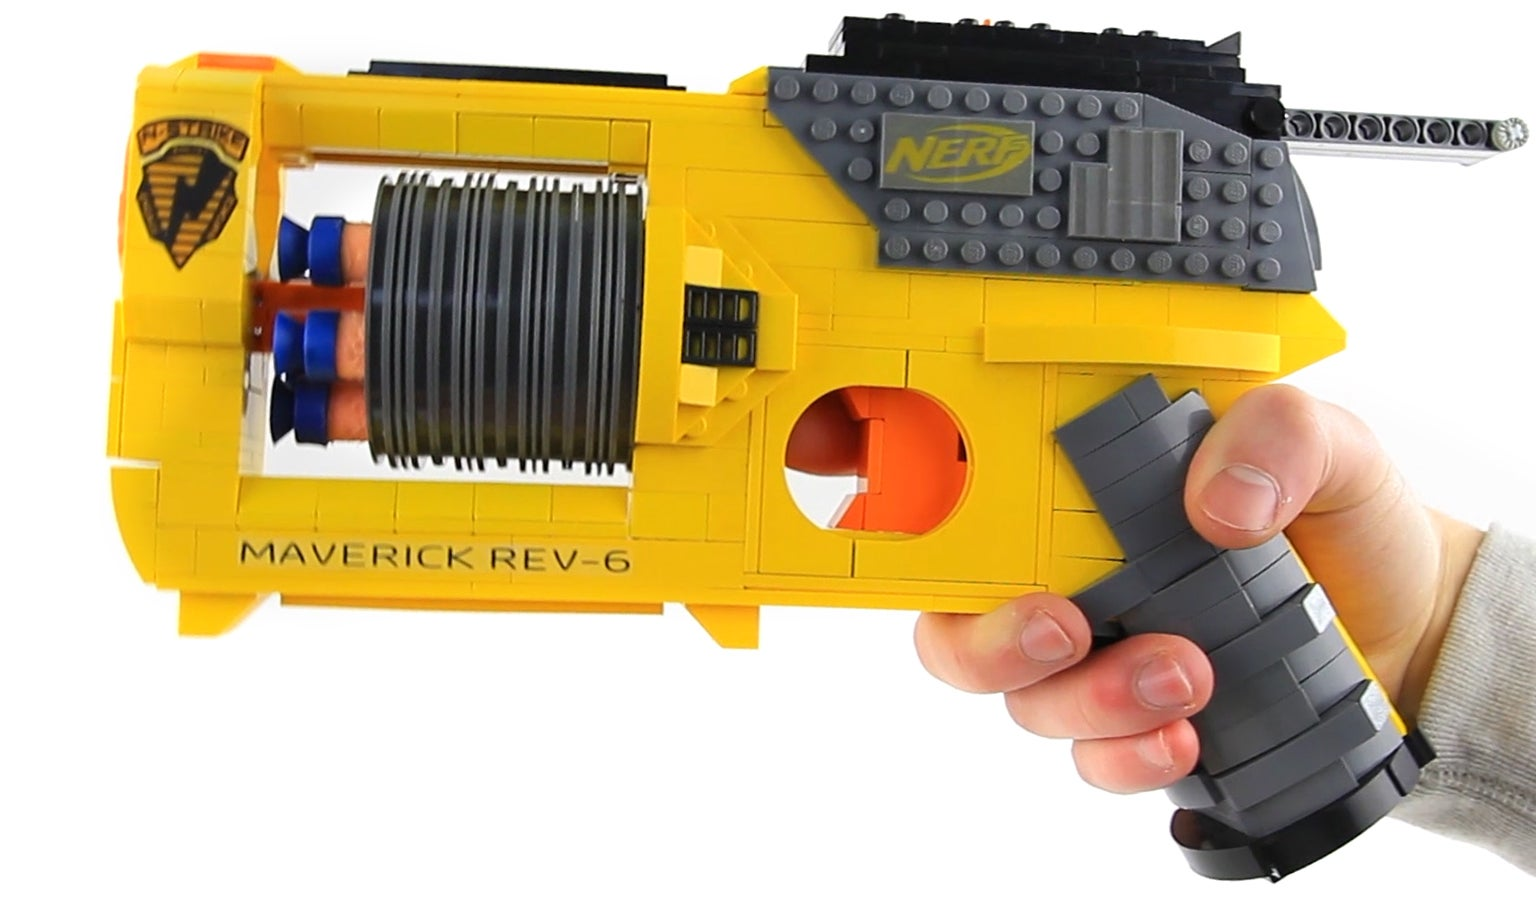 ... YouTube's Astonishing Studios has managed to recreate a working version  of the classic Nerf Maverick REV-6 blaster using nothing but plastic bricks  and ...